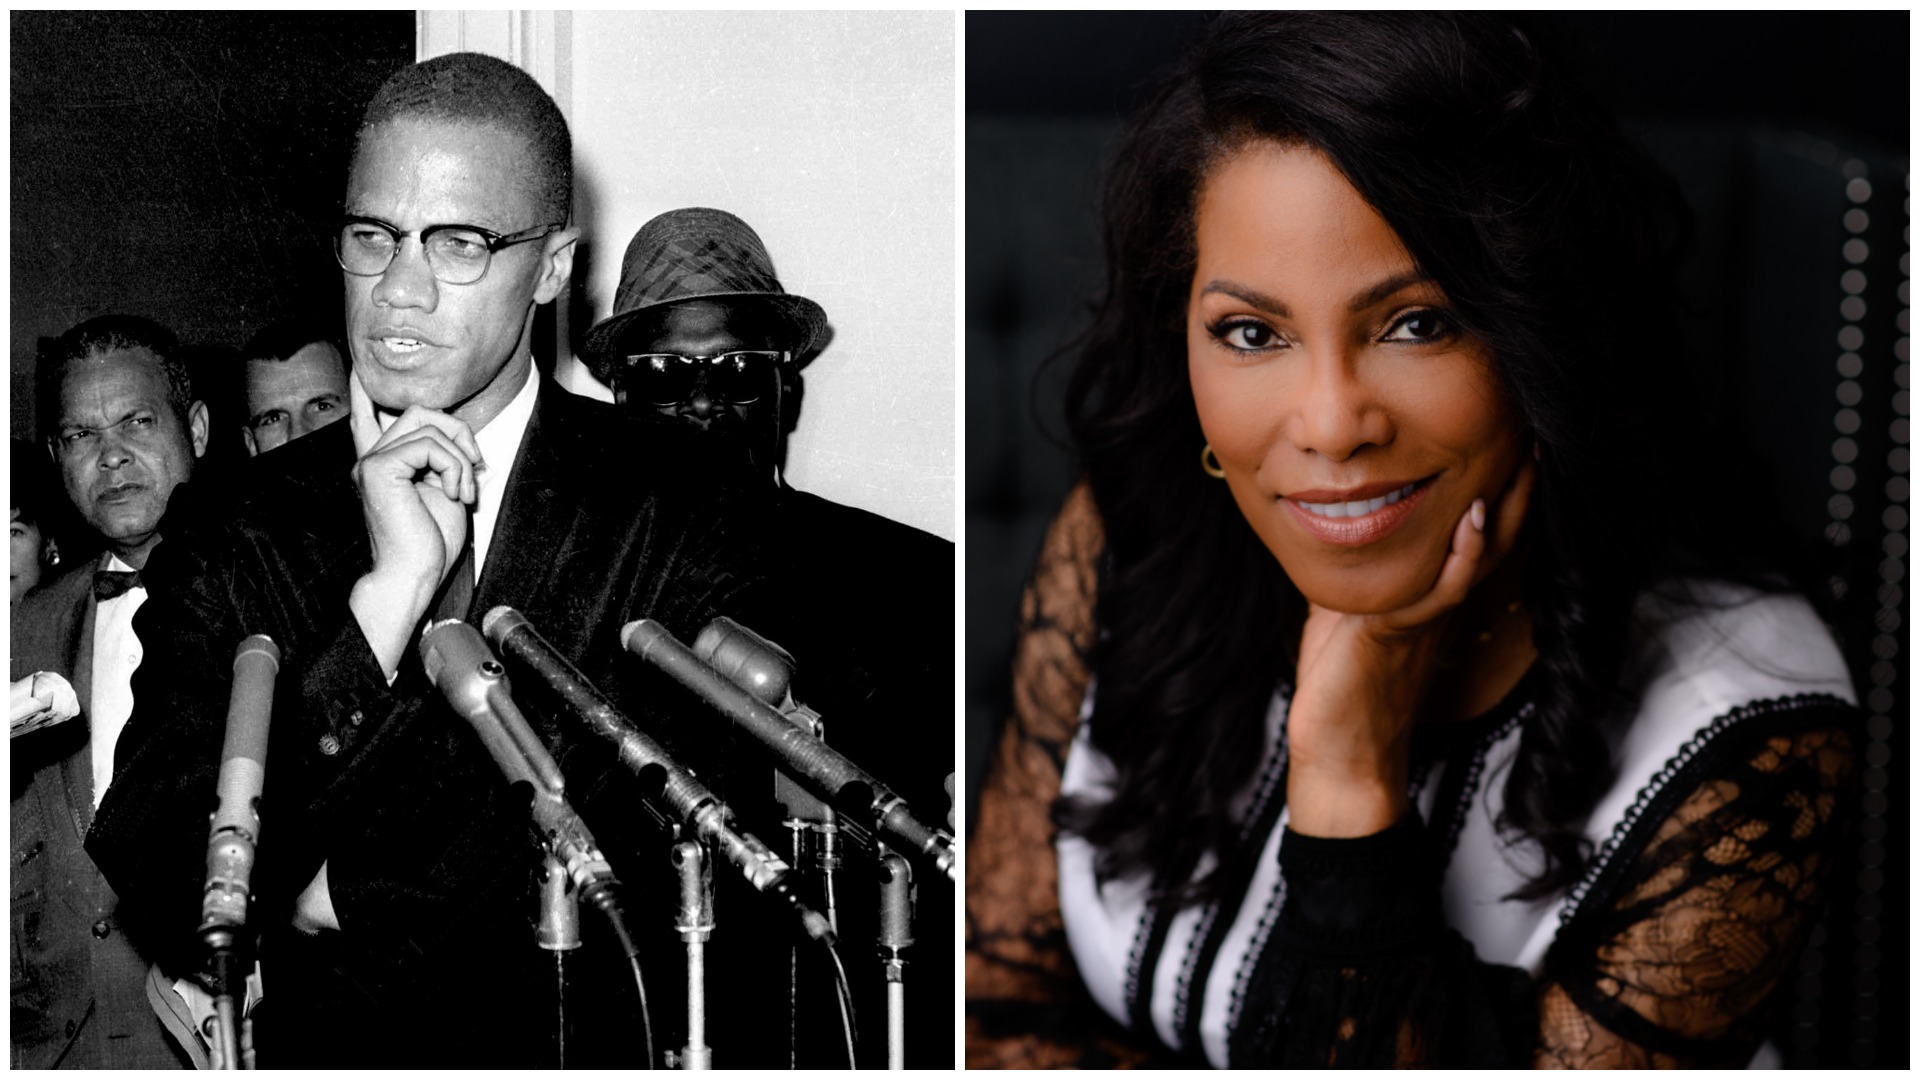 Malcolm X TV Series in the Works from Activist's Daughter Ilyasah Shabazz